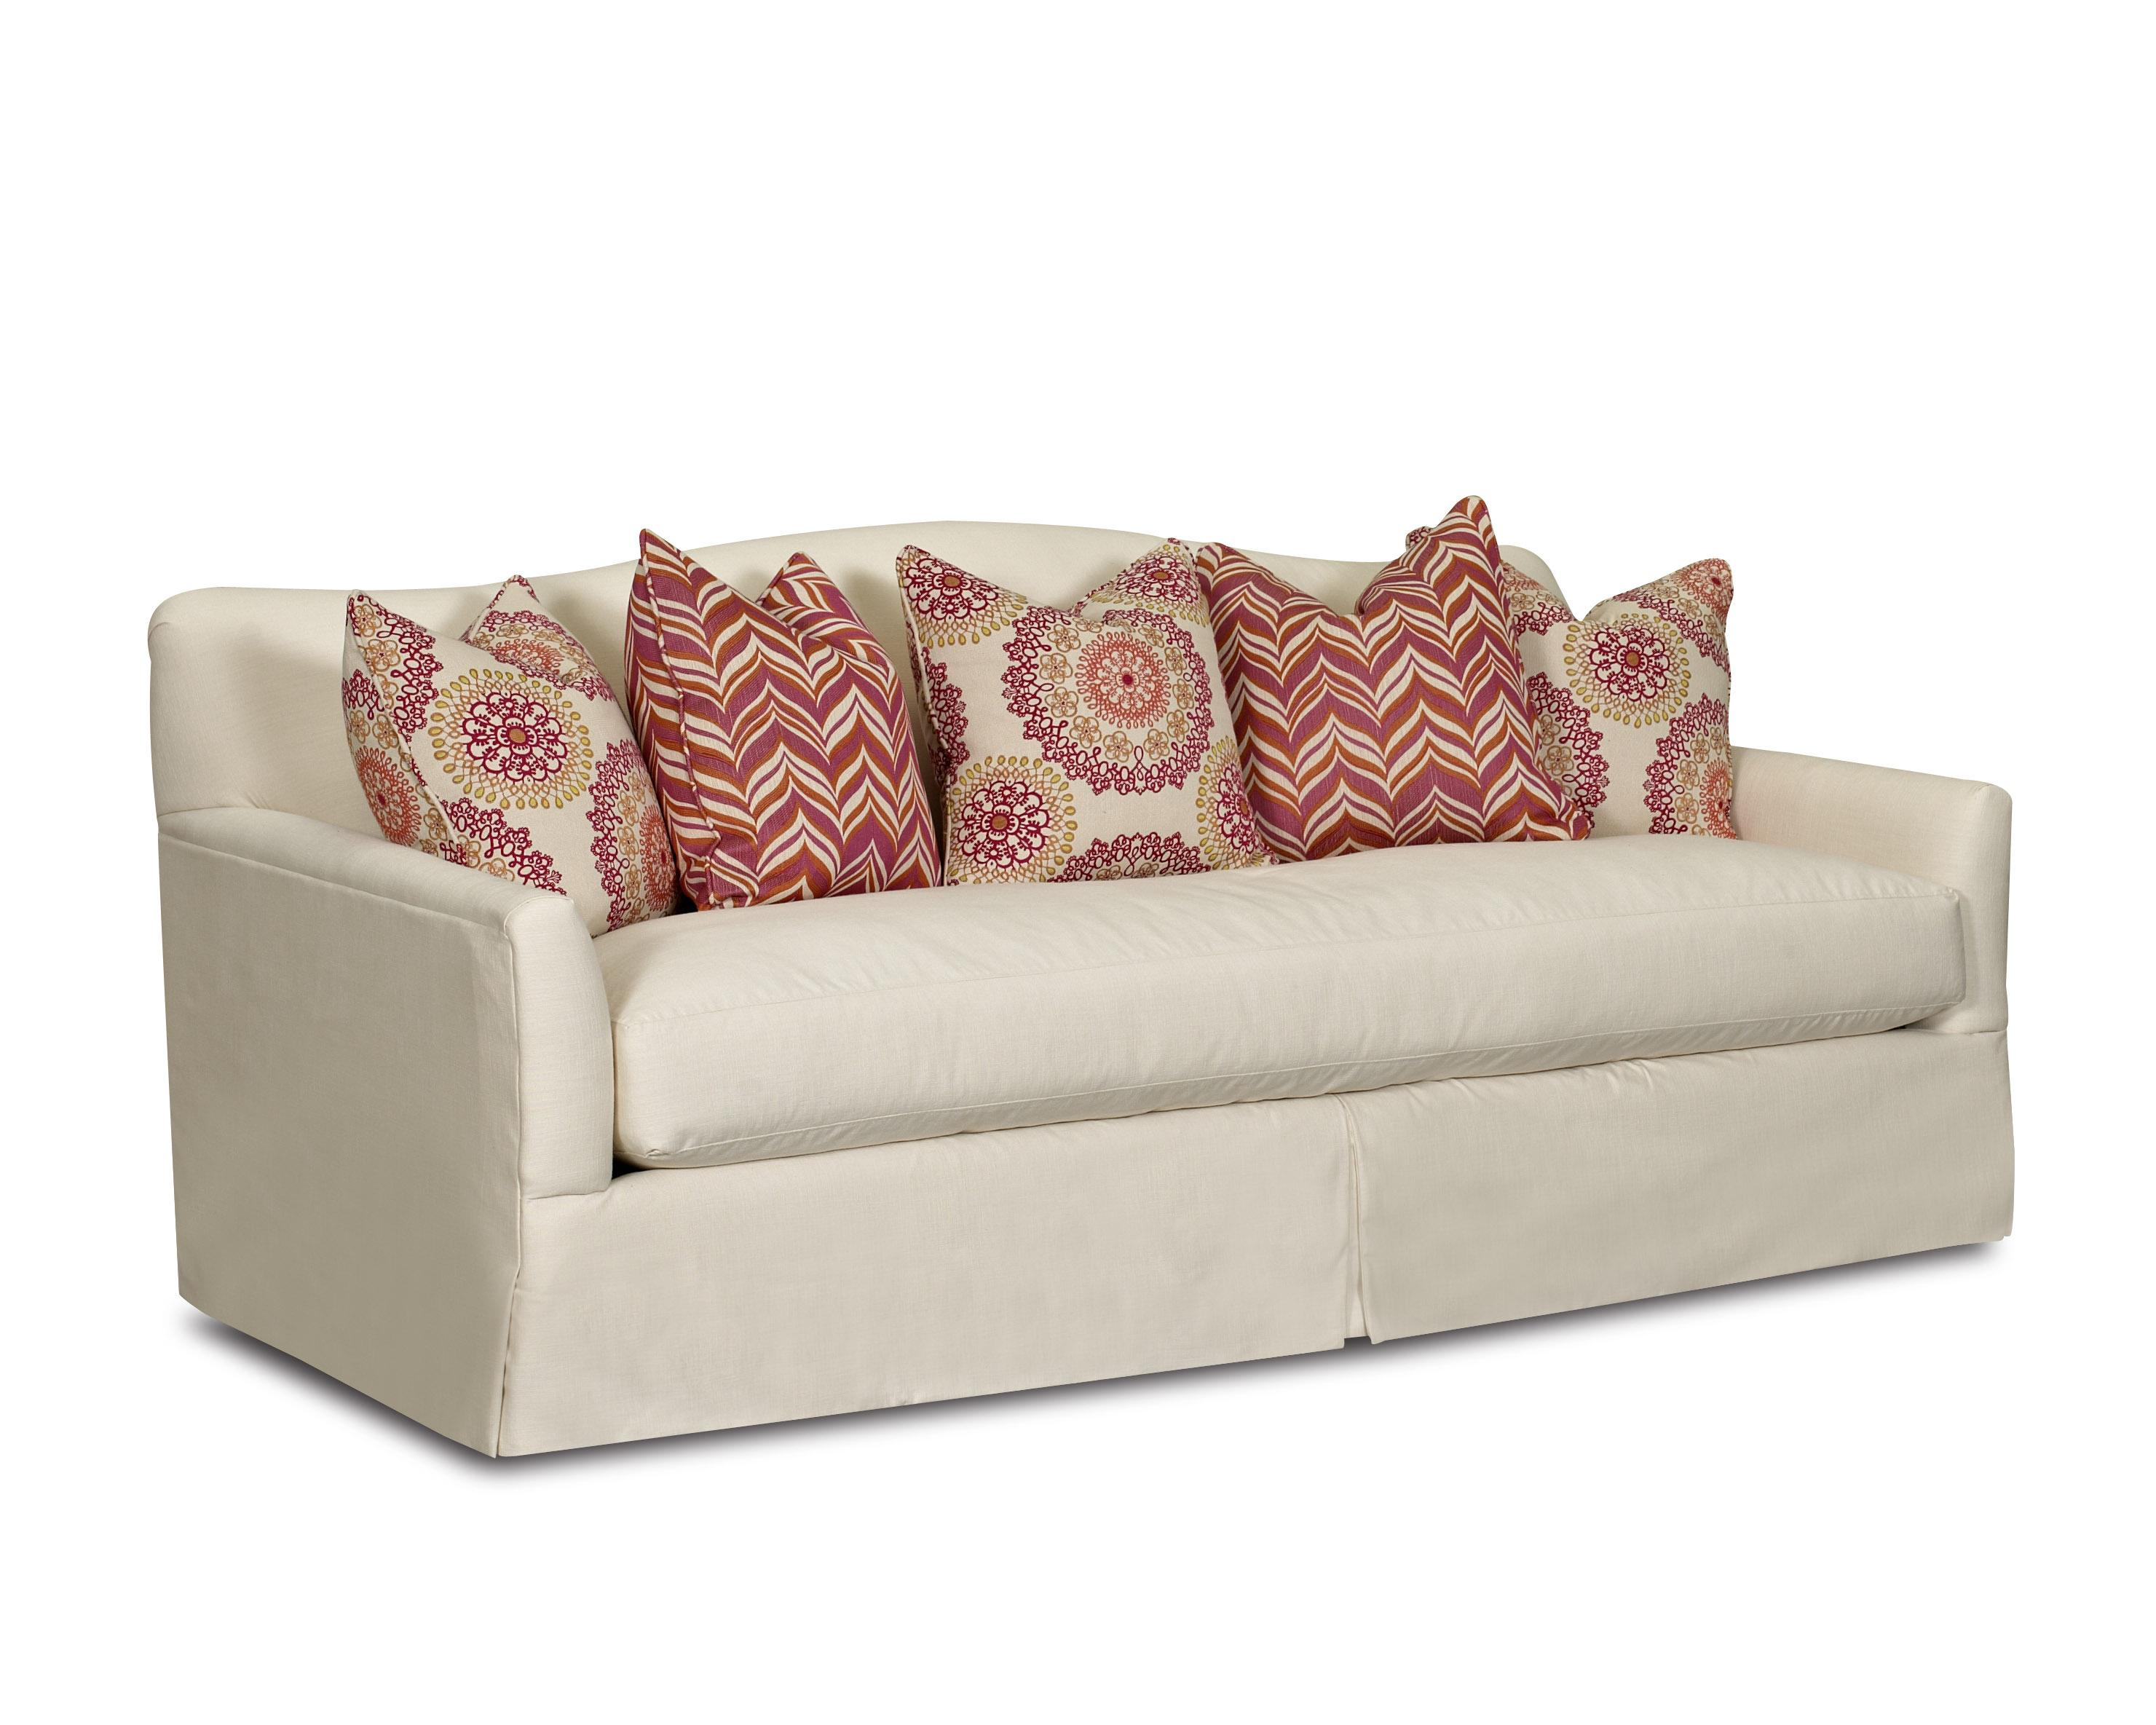 Transitional Stationary Sofa with Bench Seat Cushion  : products2Fklaussner2Fcolor2Flindsay20312d3120020s b3 from www.wolffurniture.com size 2961 x 2369 jpeg 454kB